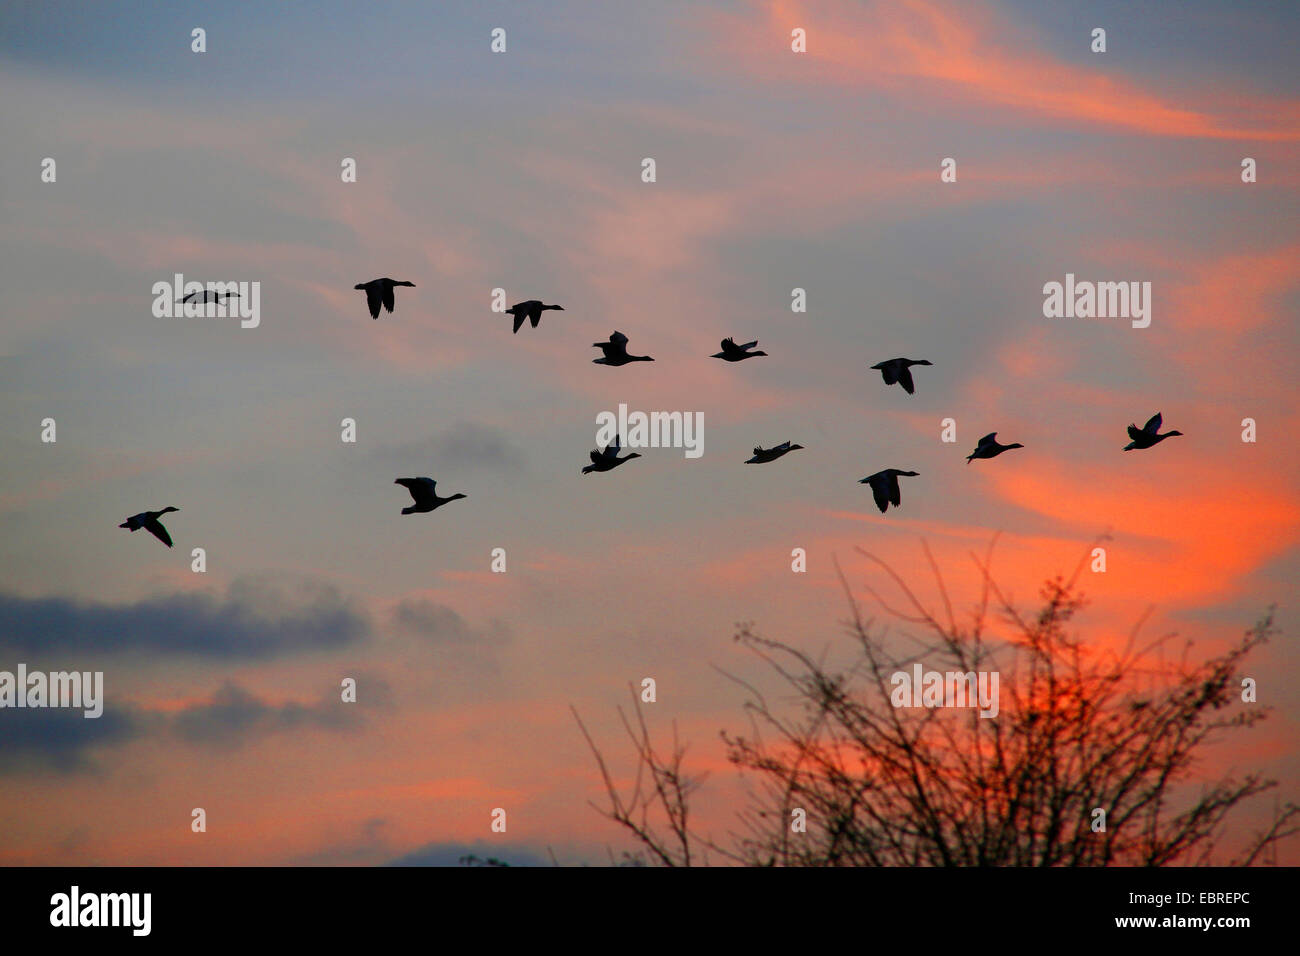 greylag goose (Anser anser), formation flight at sunset, Germany - Stock Image